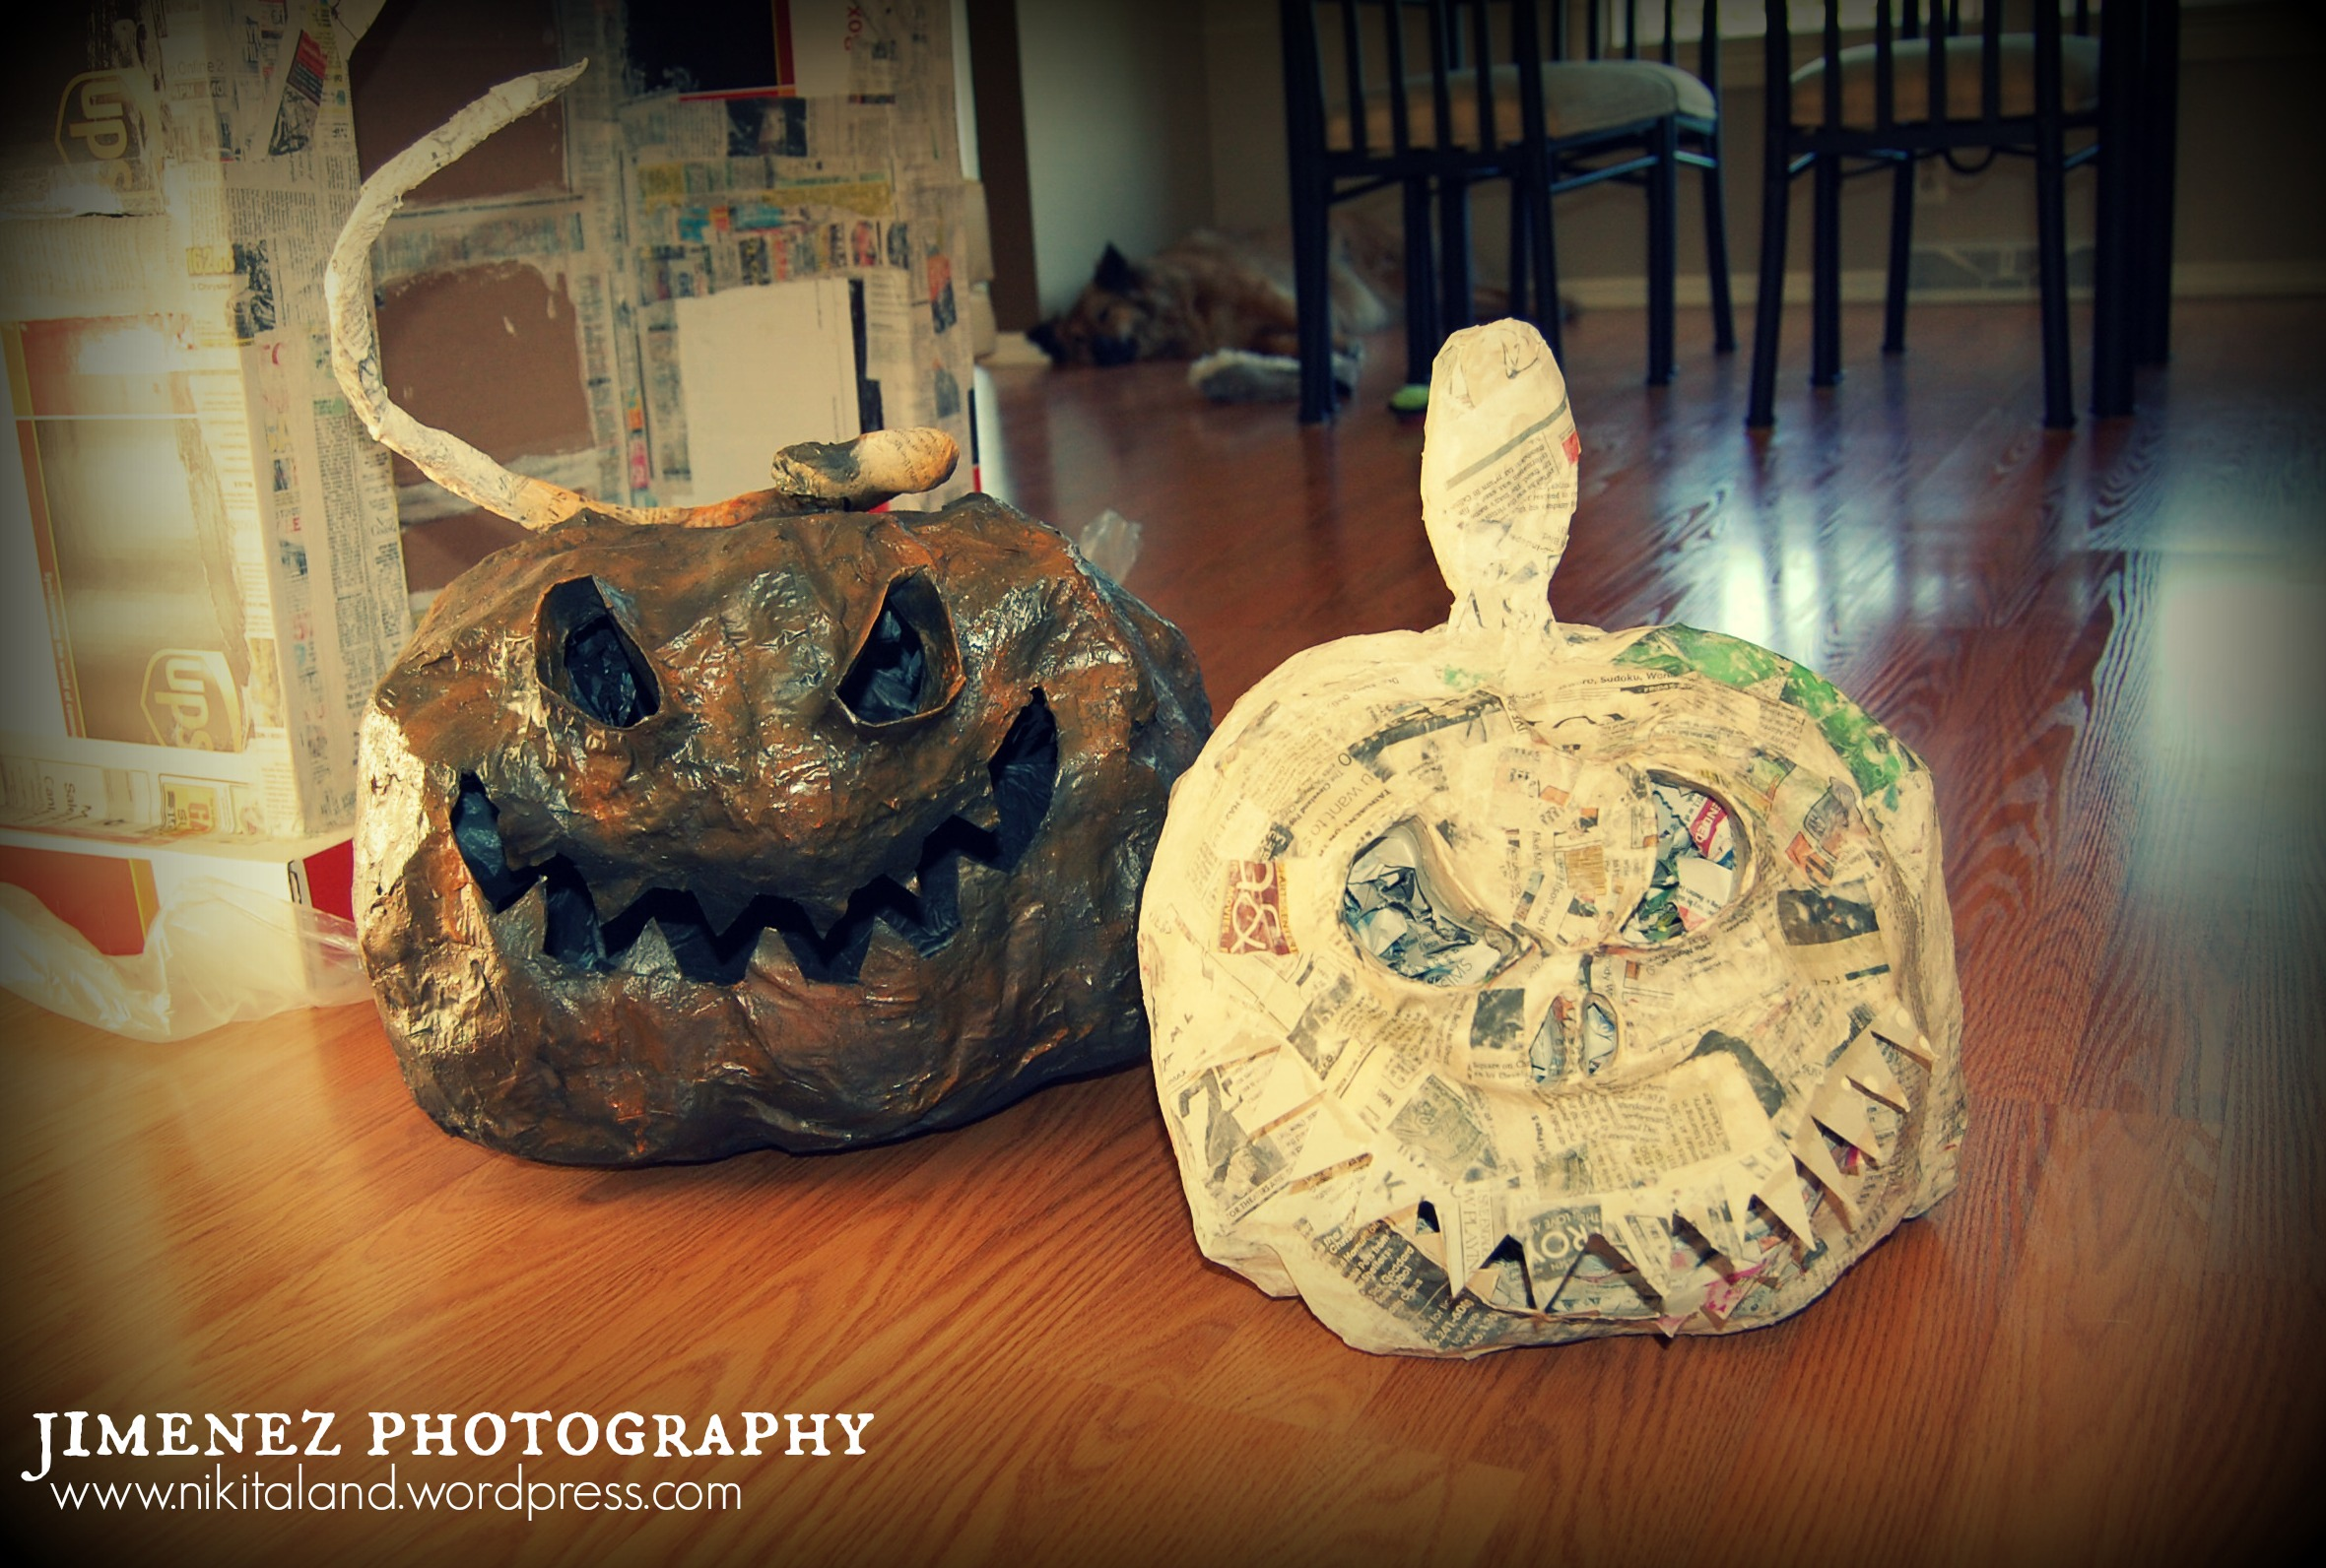 Paper mache halloween projects nikitaland for Easy paper mache crafts